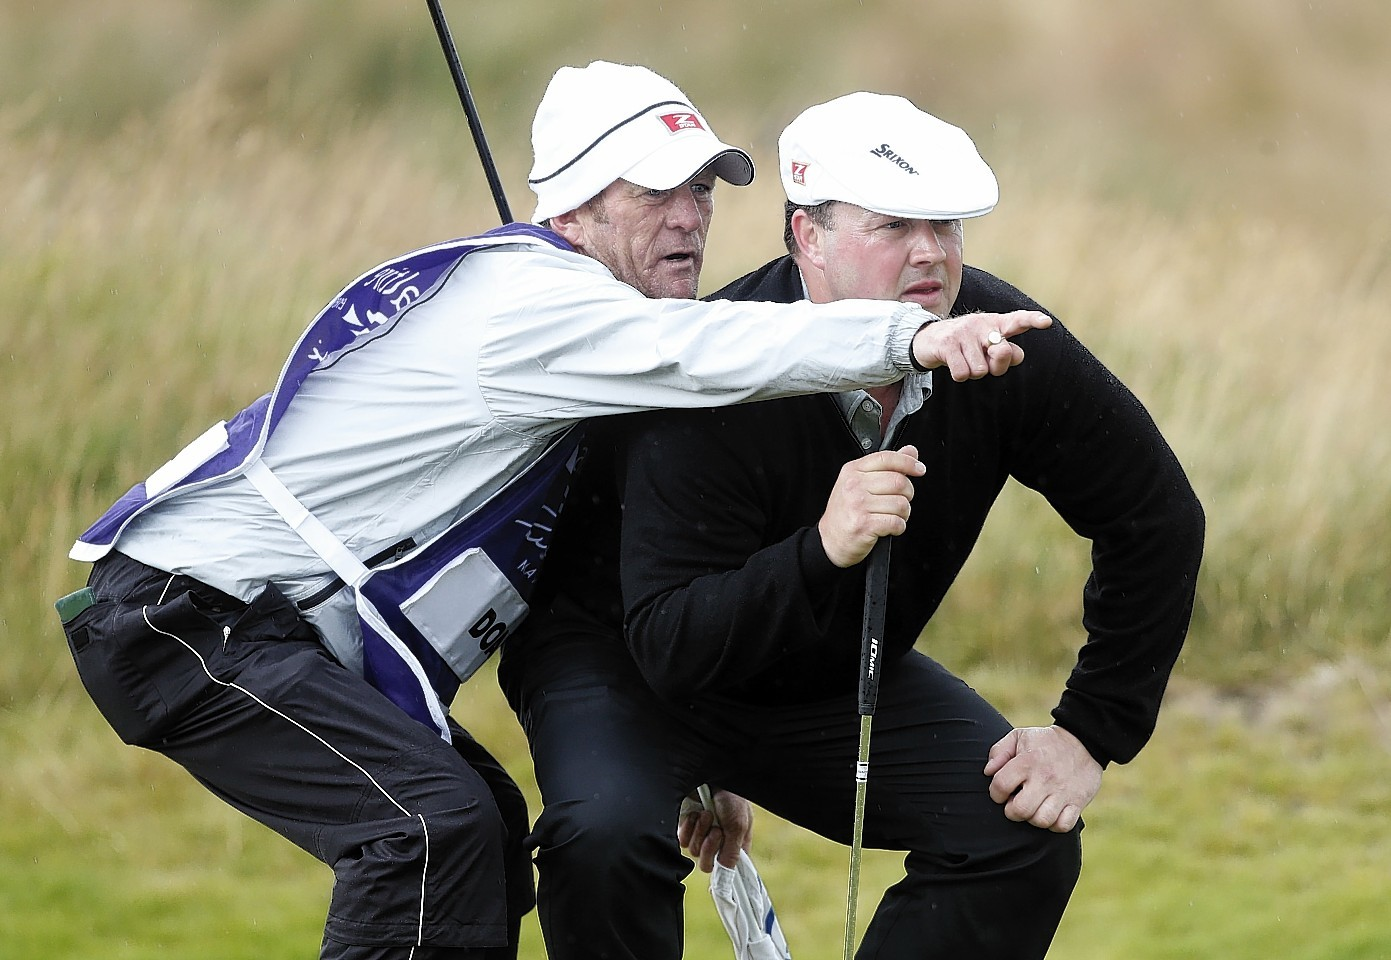 Doak takes advice from his caddy on the 16th